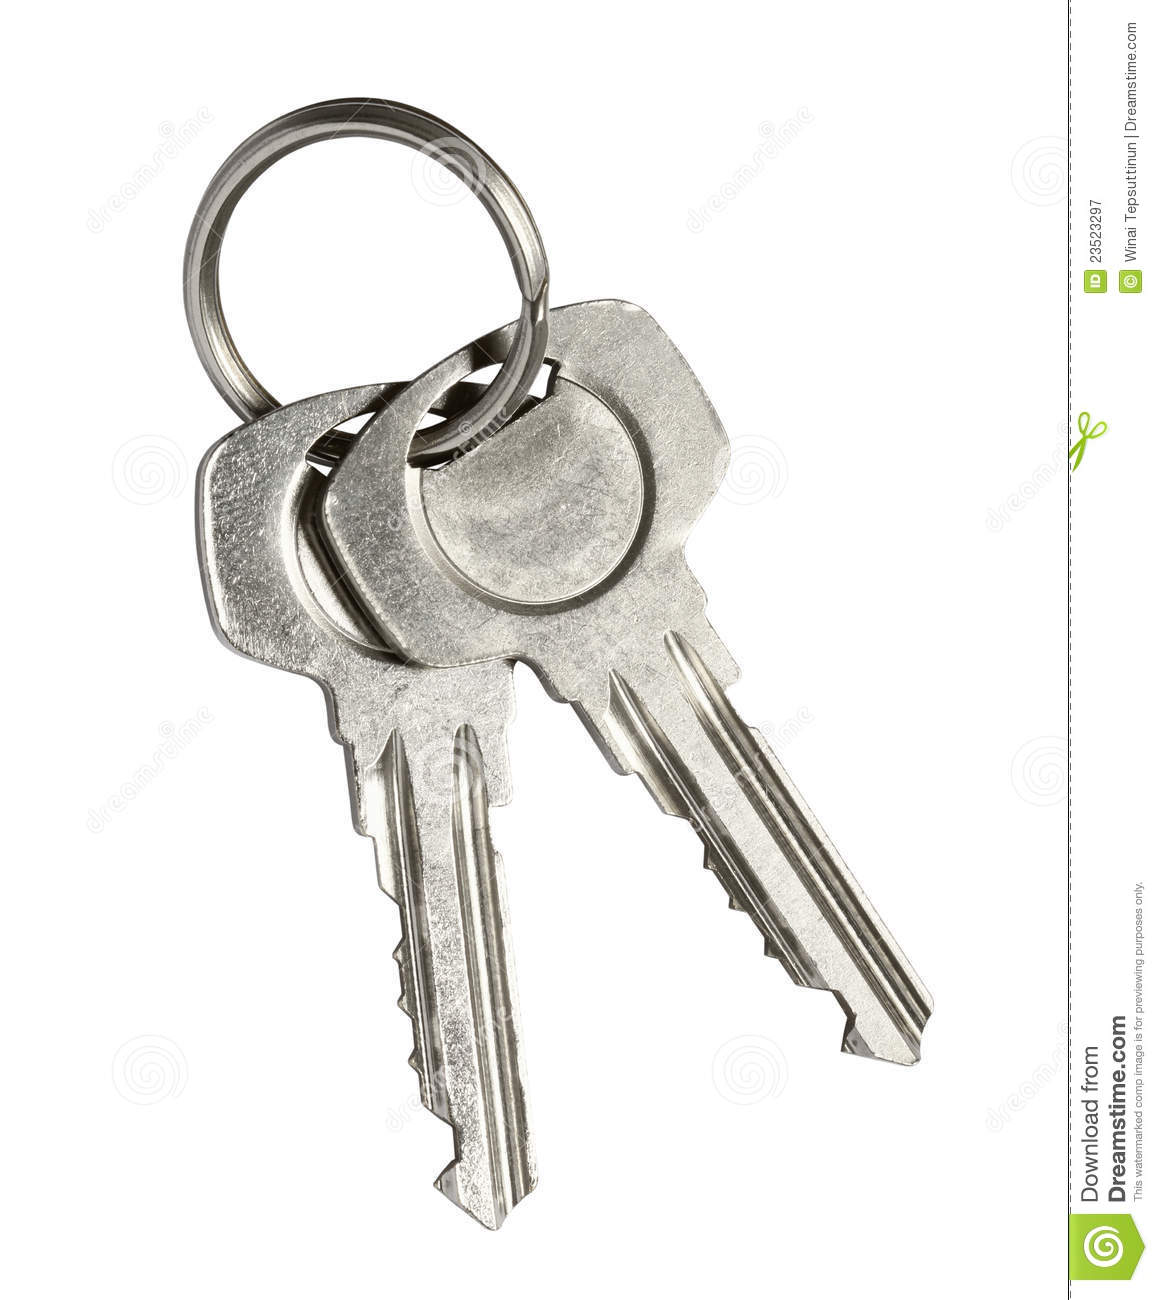 Door keys royalty free stock photography image 23523297 for Door key design